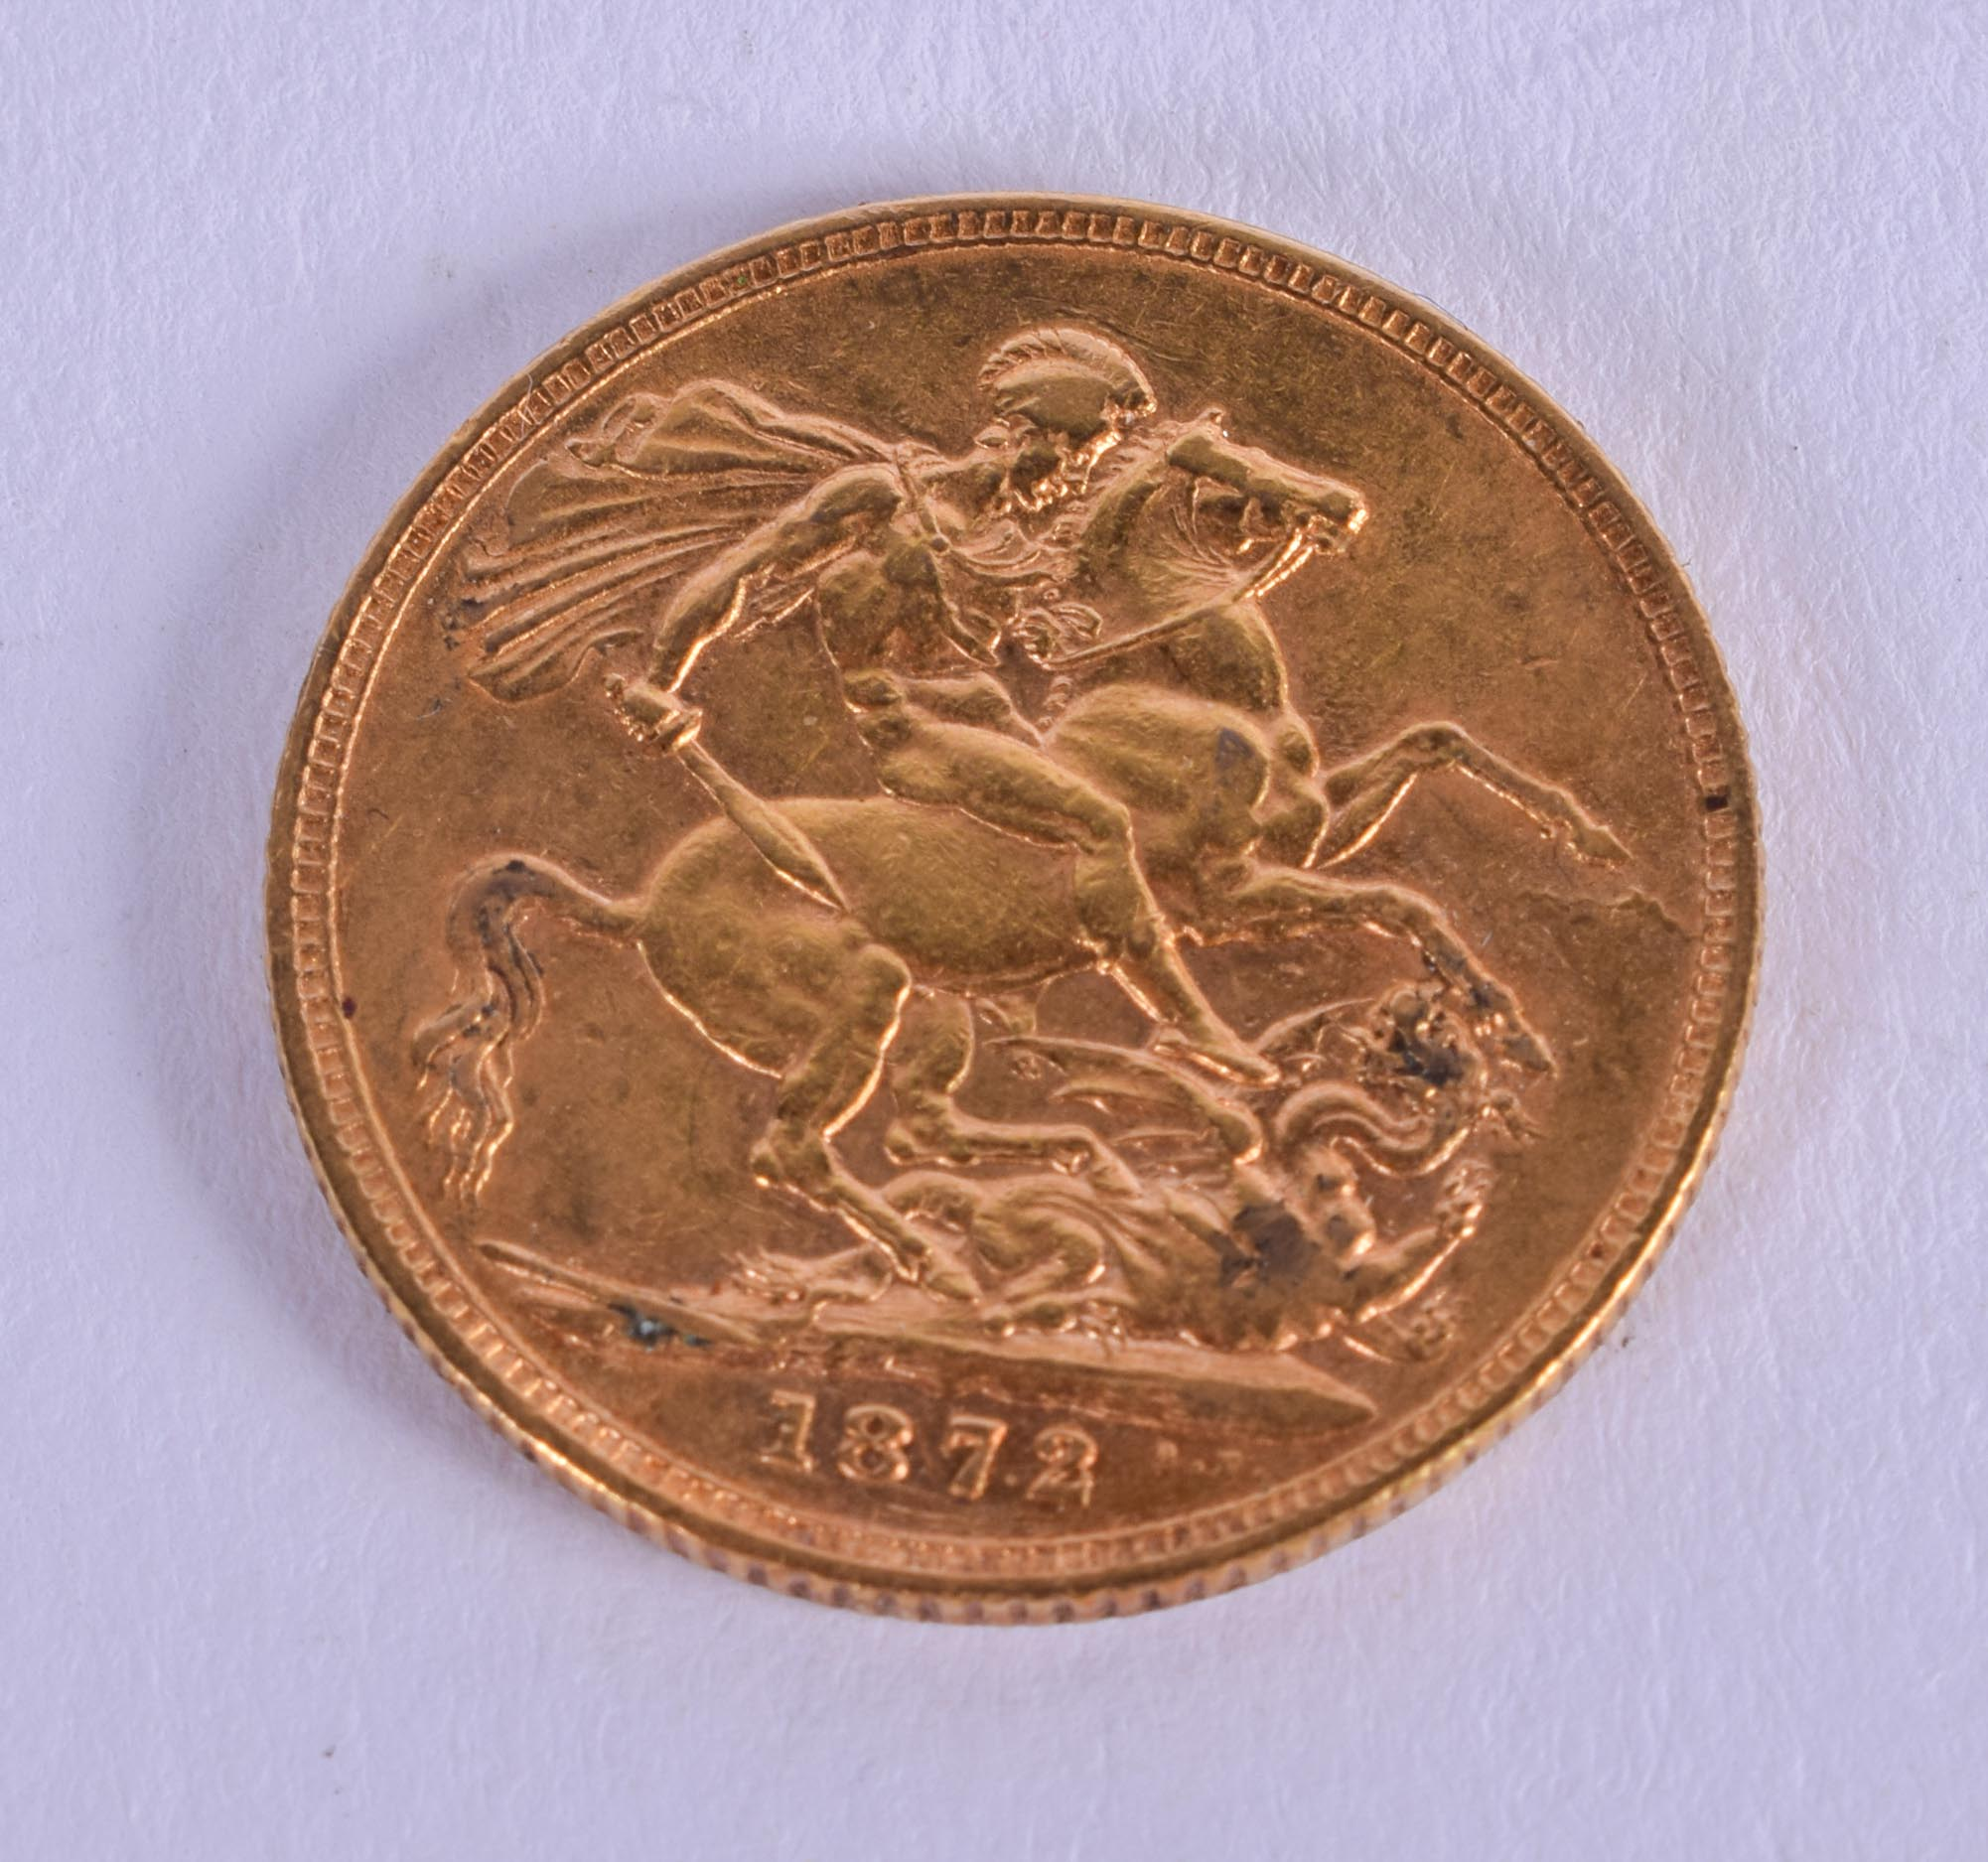 AN 1872 VICTORIAN GOLD SOVEREIGN. 8 grams. - Image 2 of 2